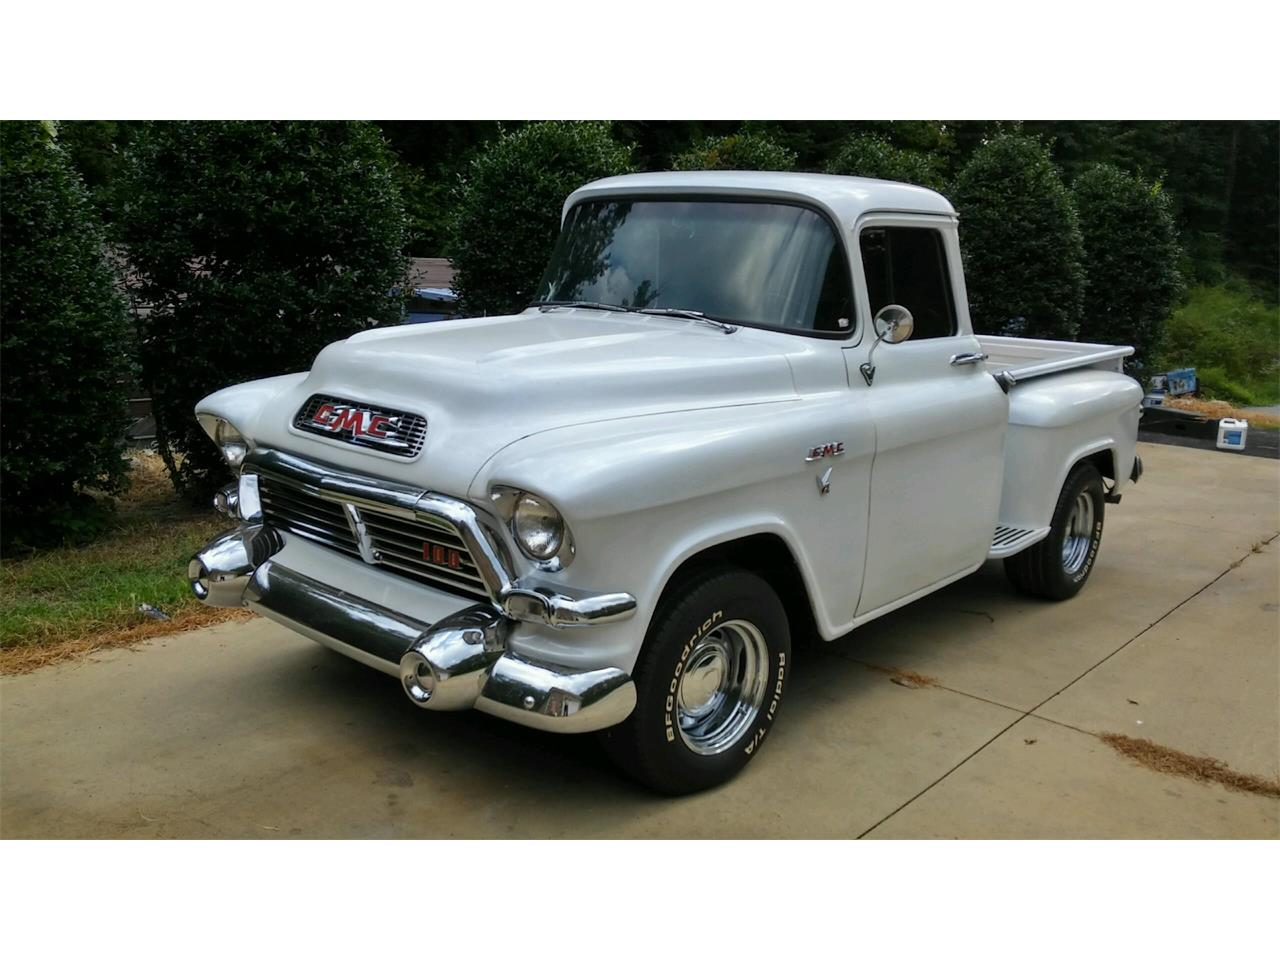 Gmc Truck For Sale >> For Sale 1957 Gmc Truck In Belmont North Carolina